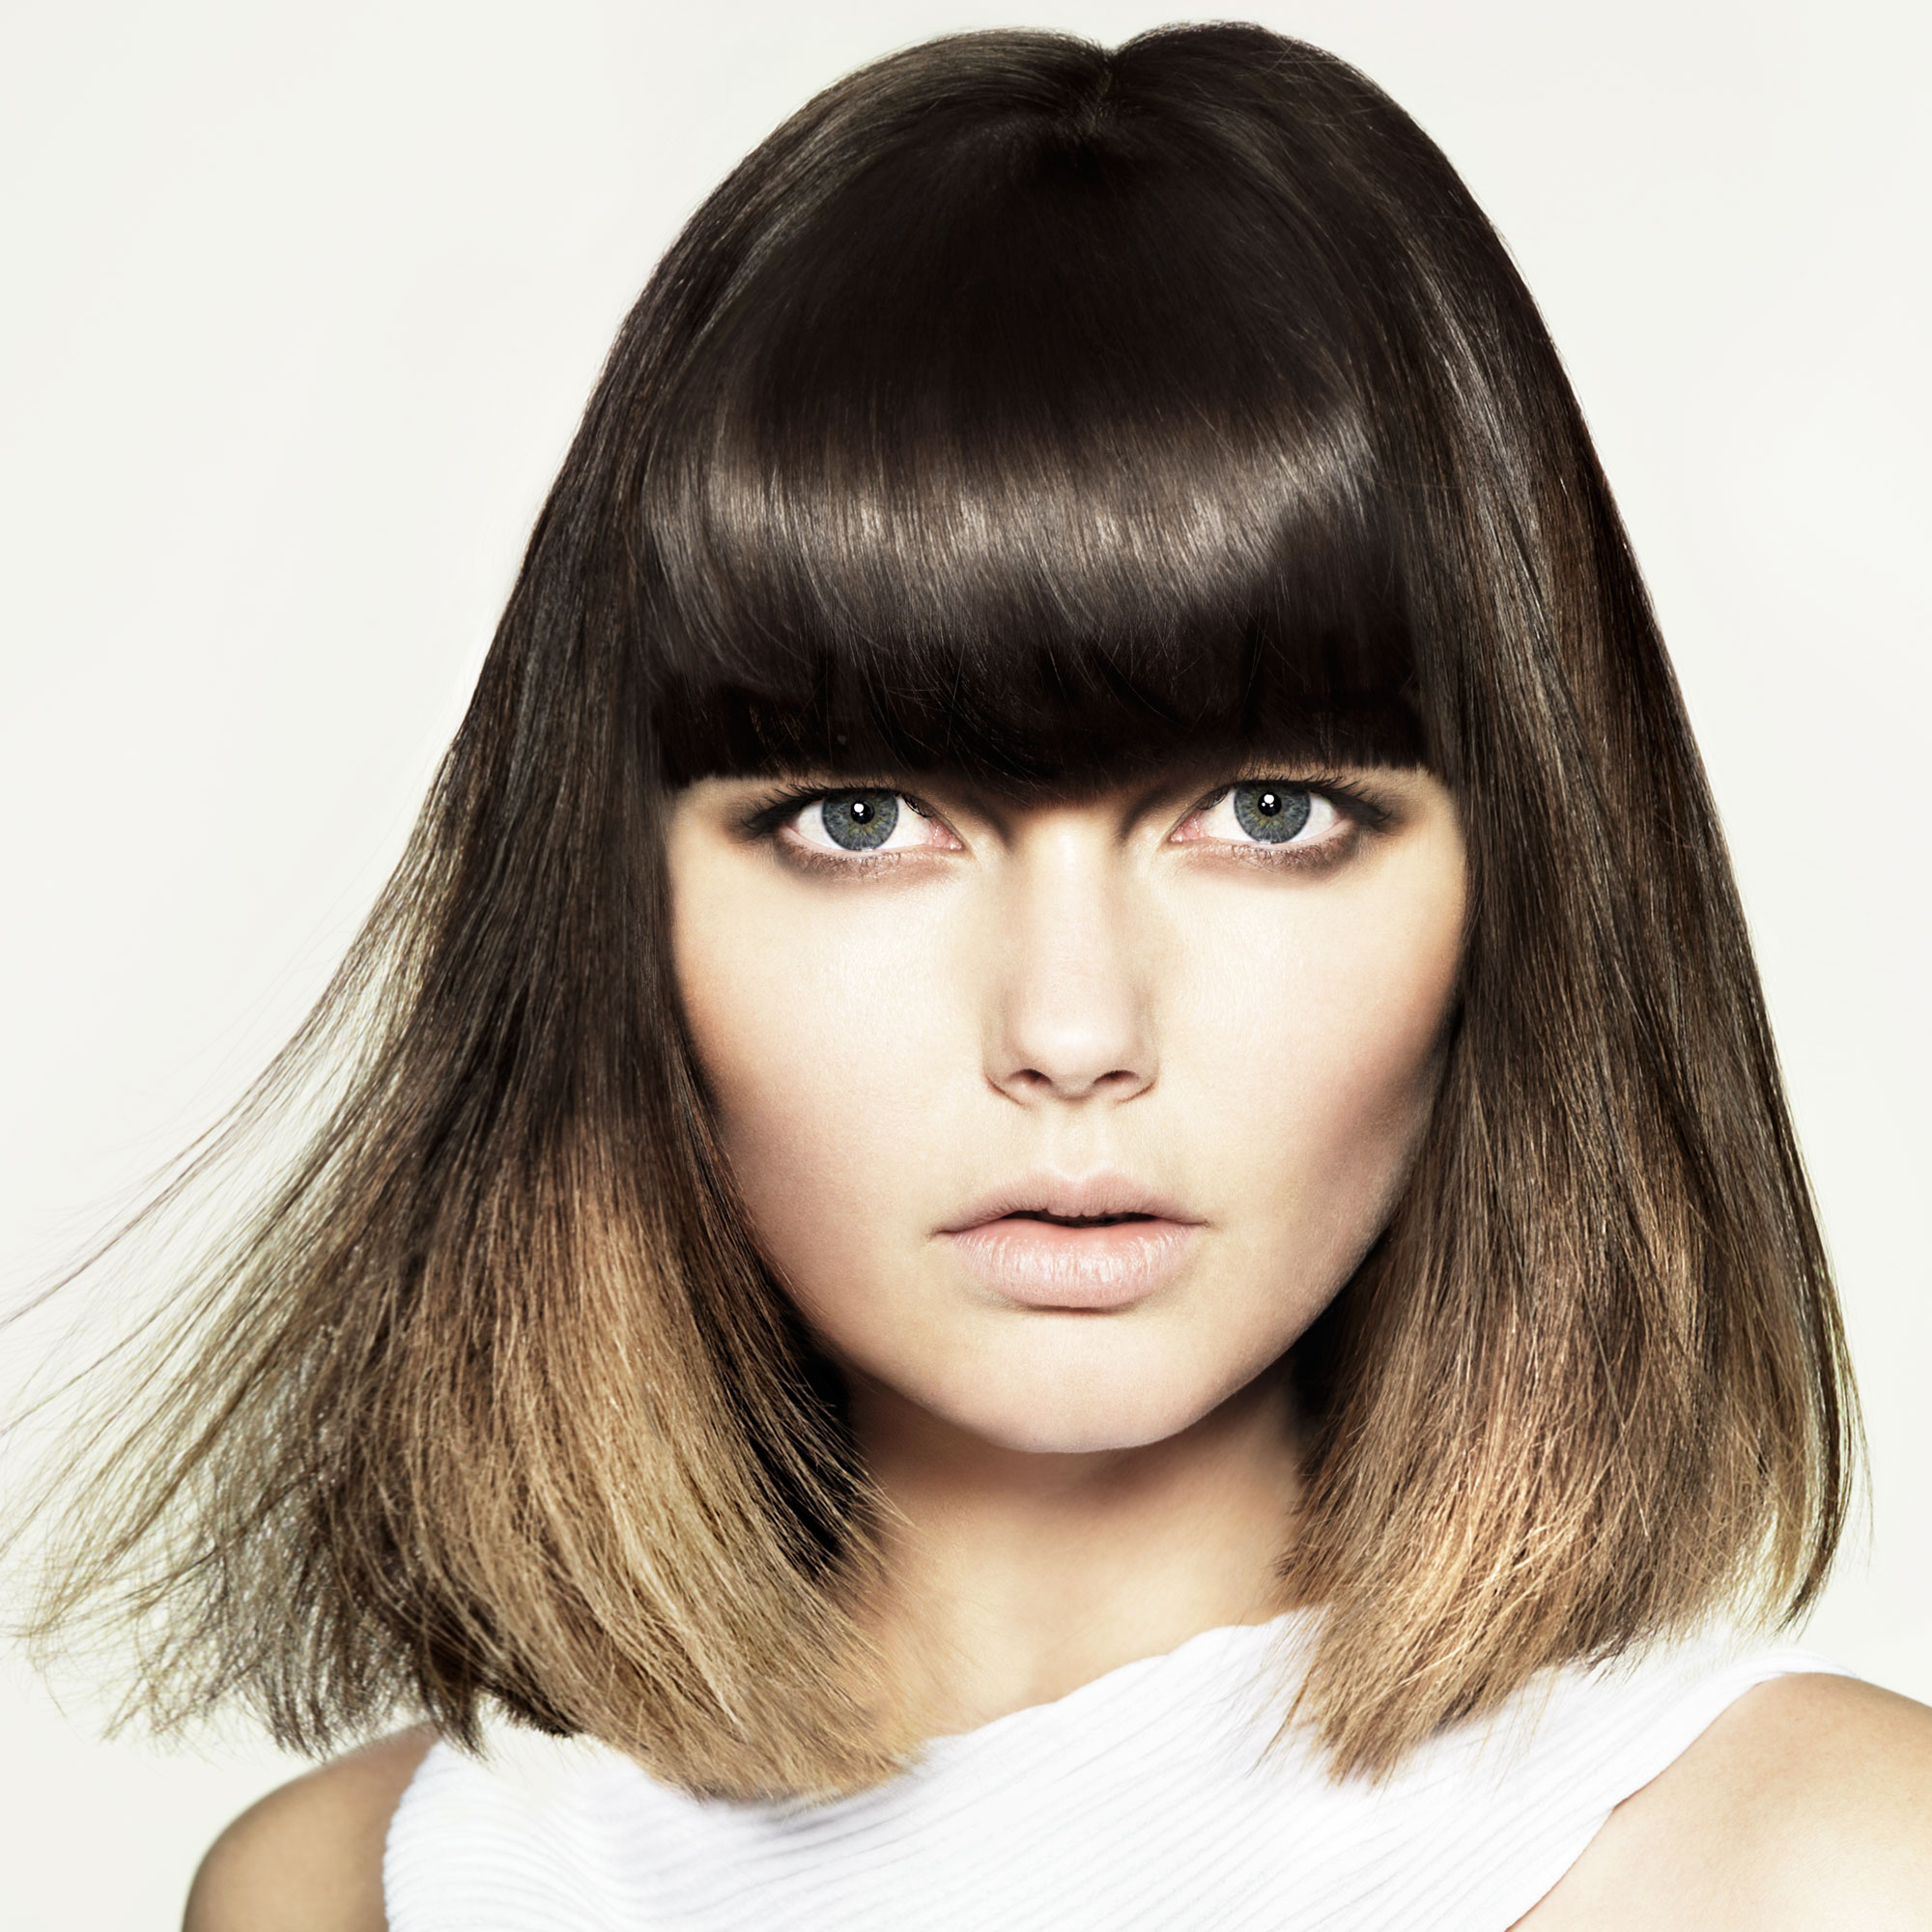 Photo of a model with a bob with fringe hairstyle